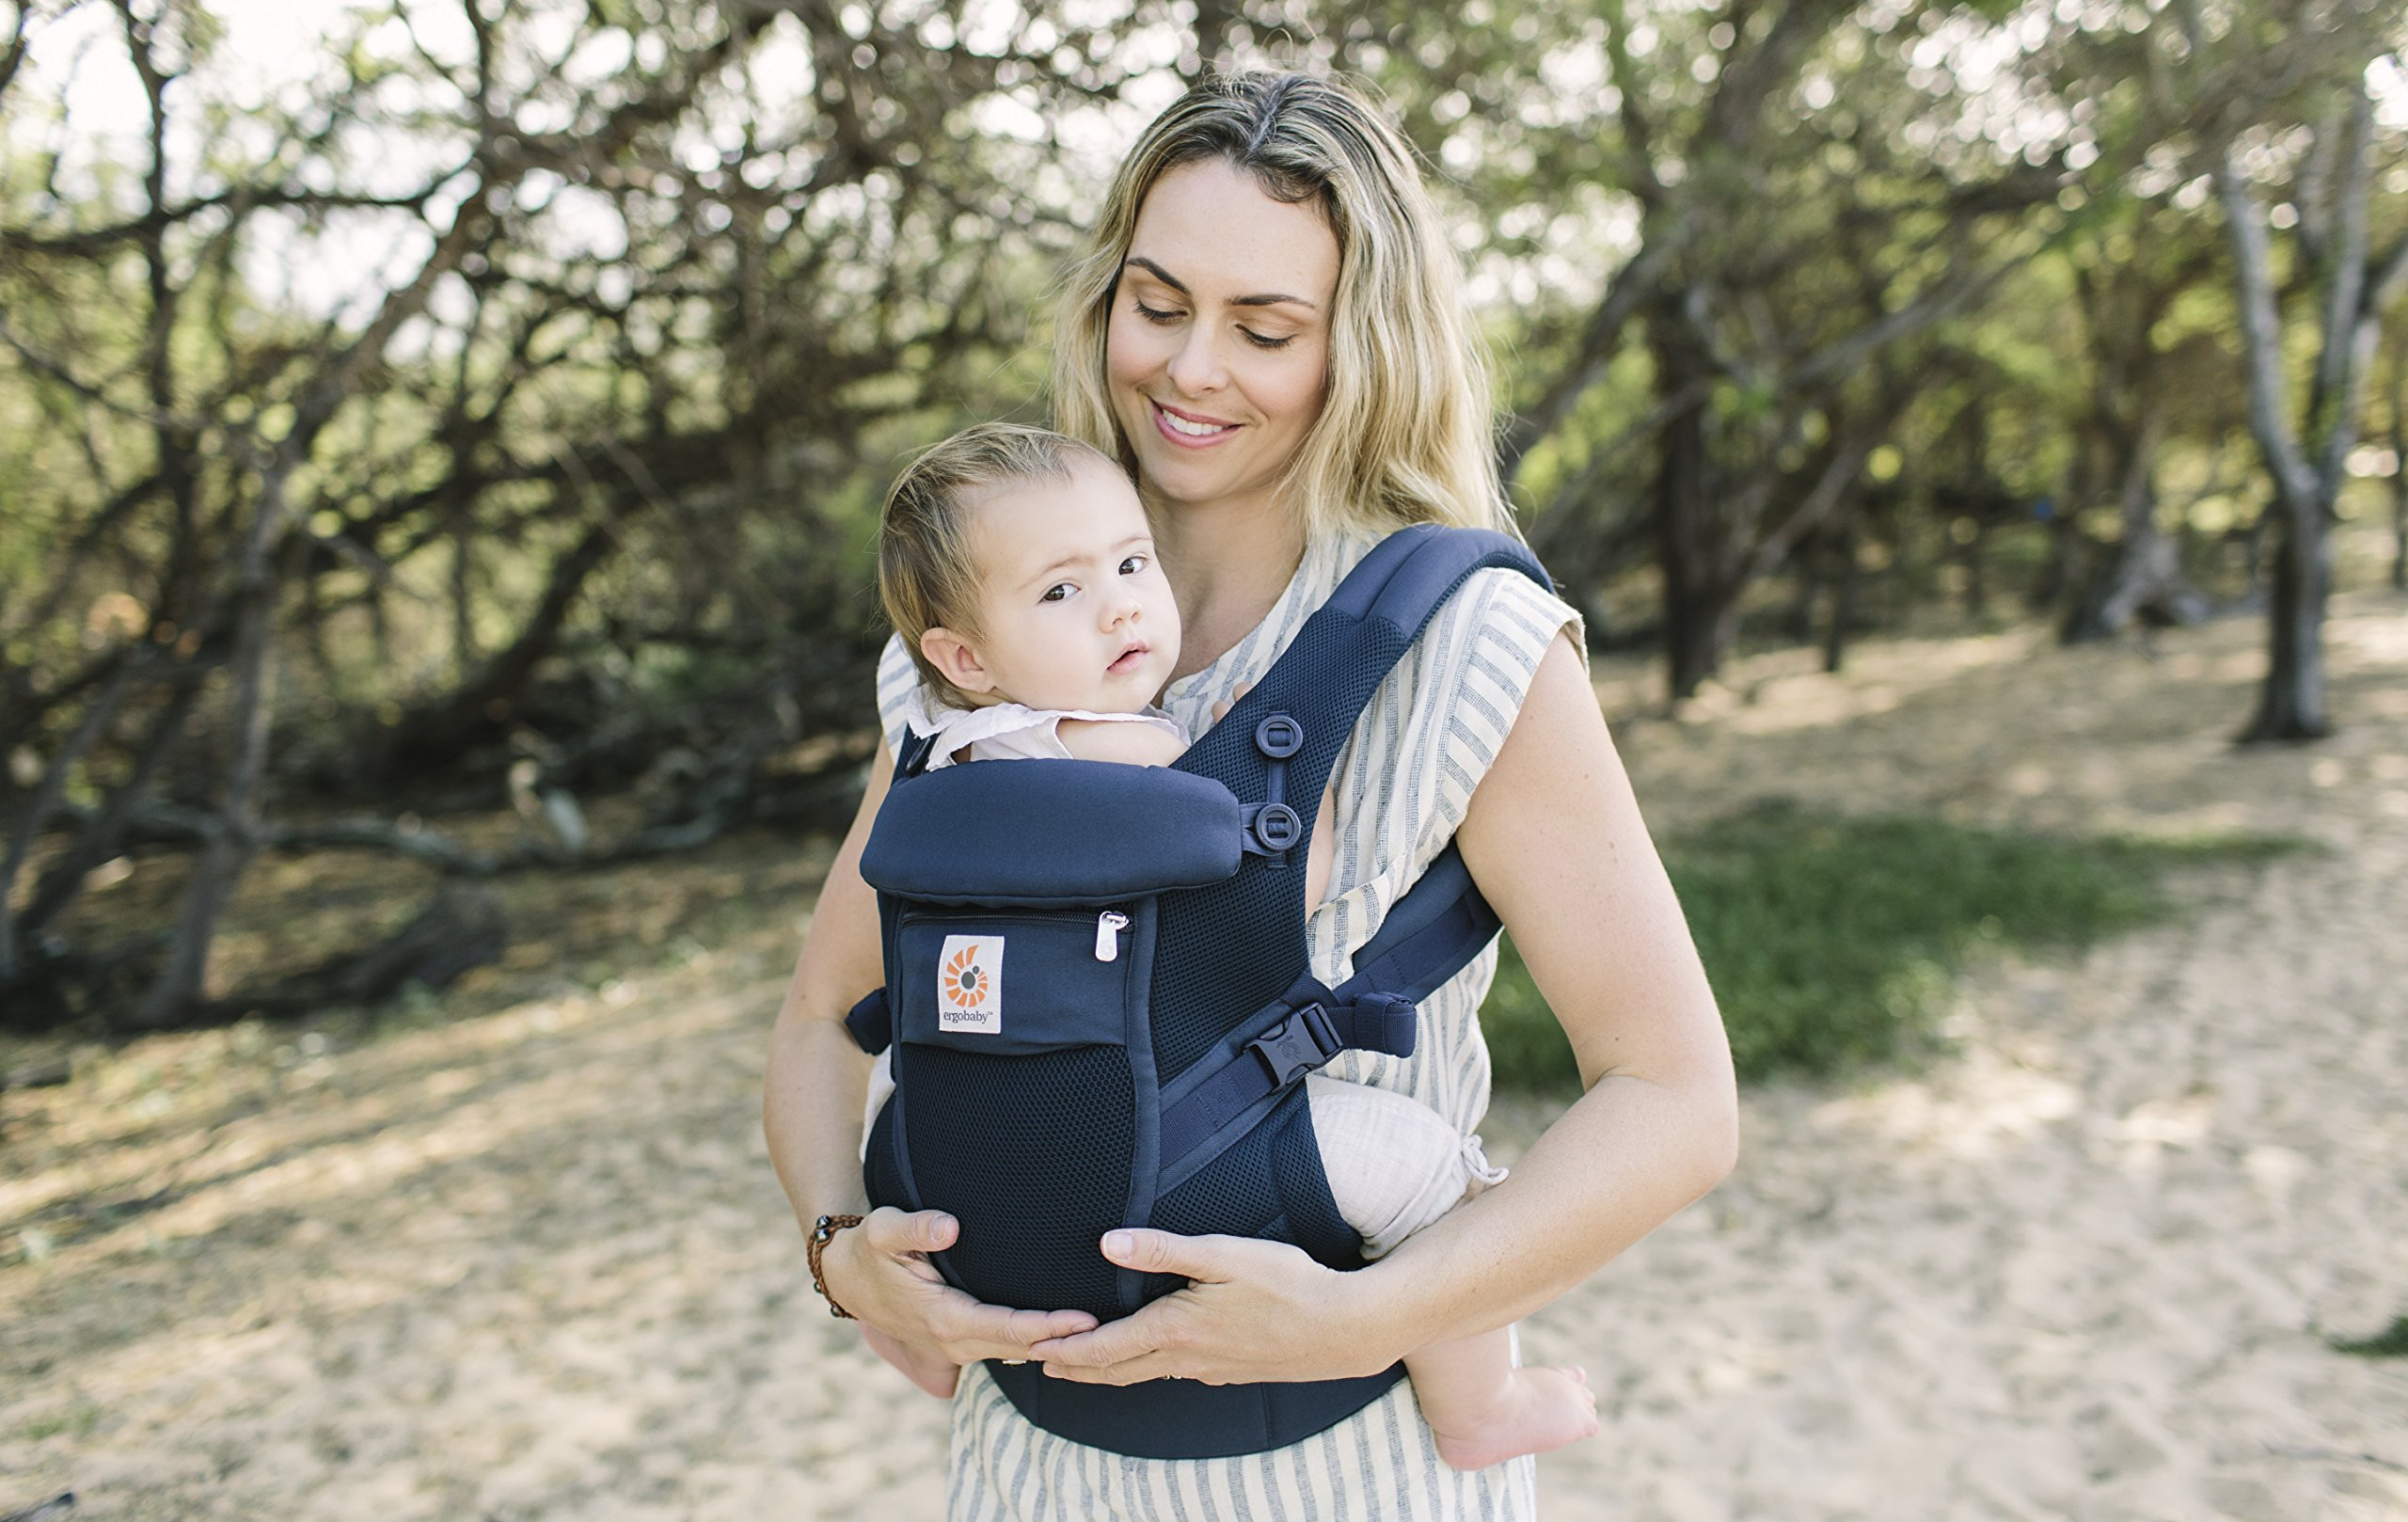 Ergobaby Baby Carrier for Newborn to Toddler up to 20kg, Adapt 3-Position Cool Air Mesh, Deep Blue Ergobaby Ergonomic bucket seat gradually adjusts to a growing baby from newborn to toddler (3.2 -20kg) No infant insert required 3 ergonomic carry positions: front-inward, hip and back 4